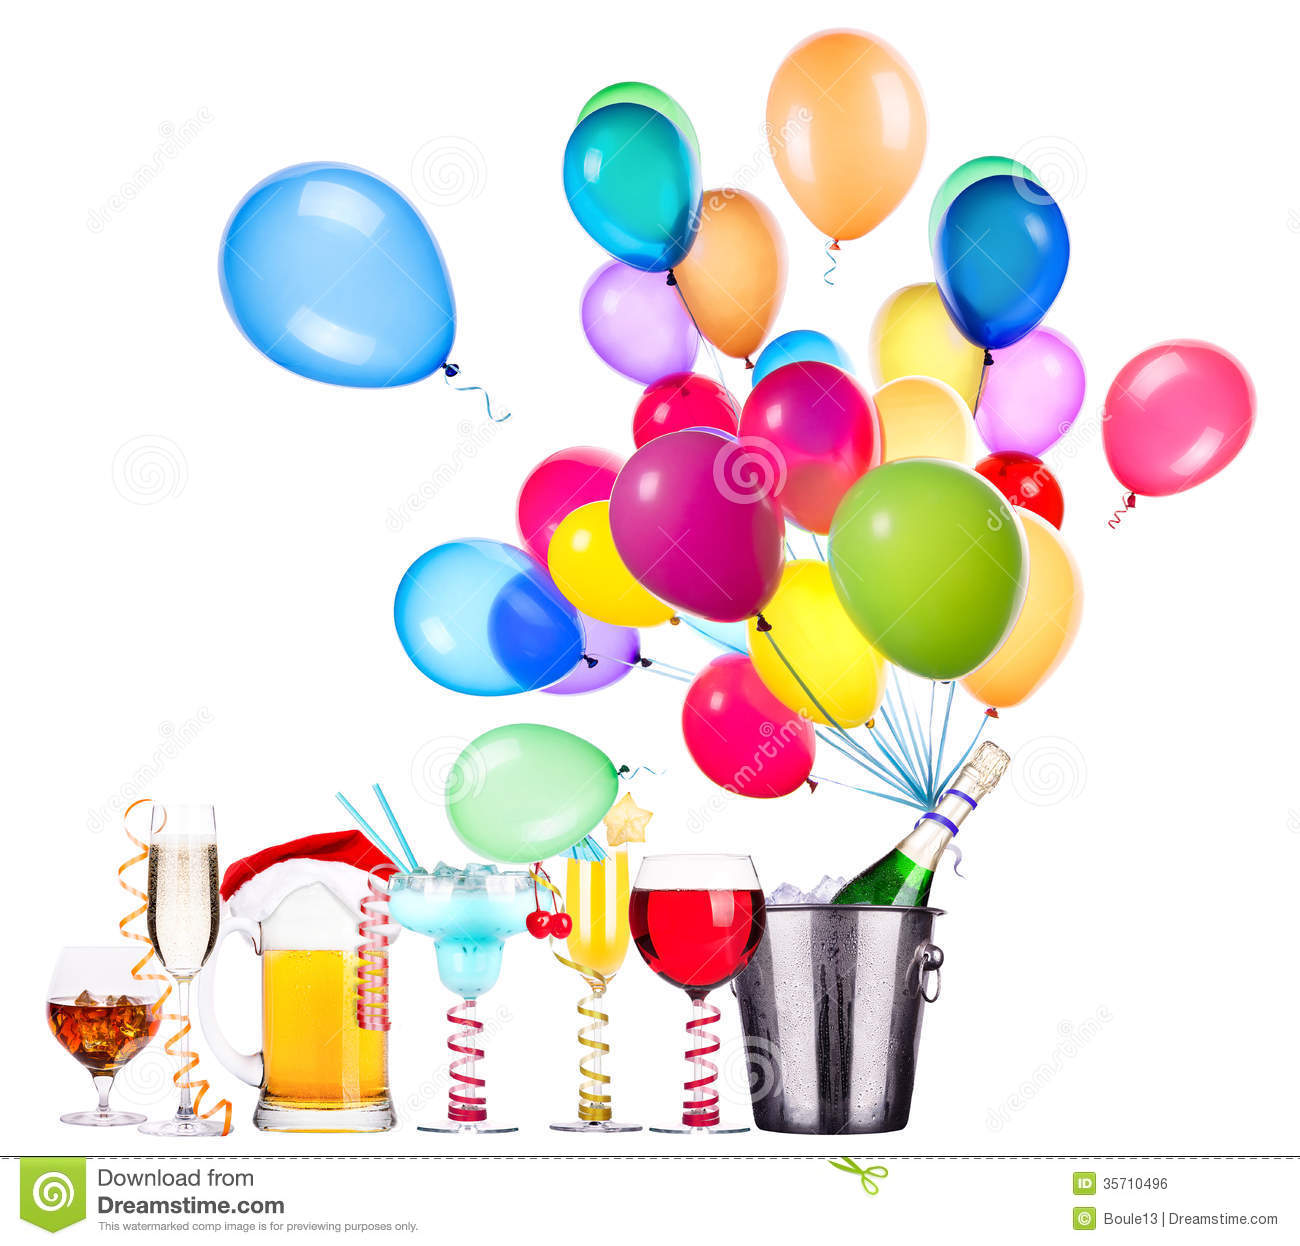 Different Images Of Alcohol With Balloons Royalty Free Stock Image ...